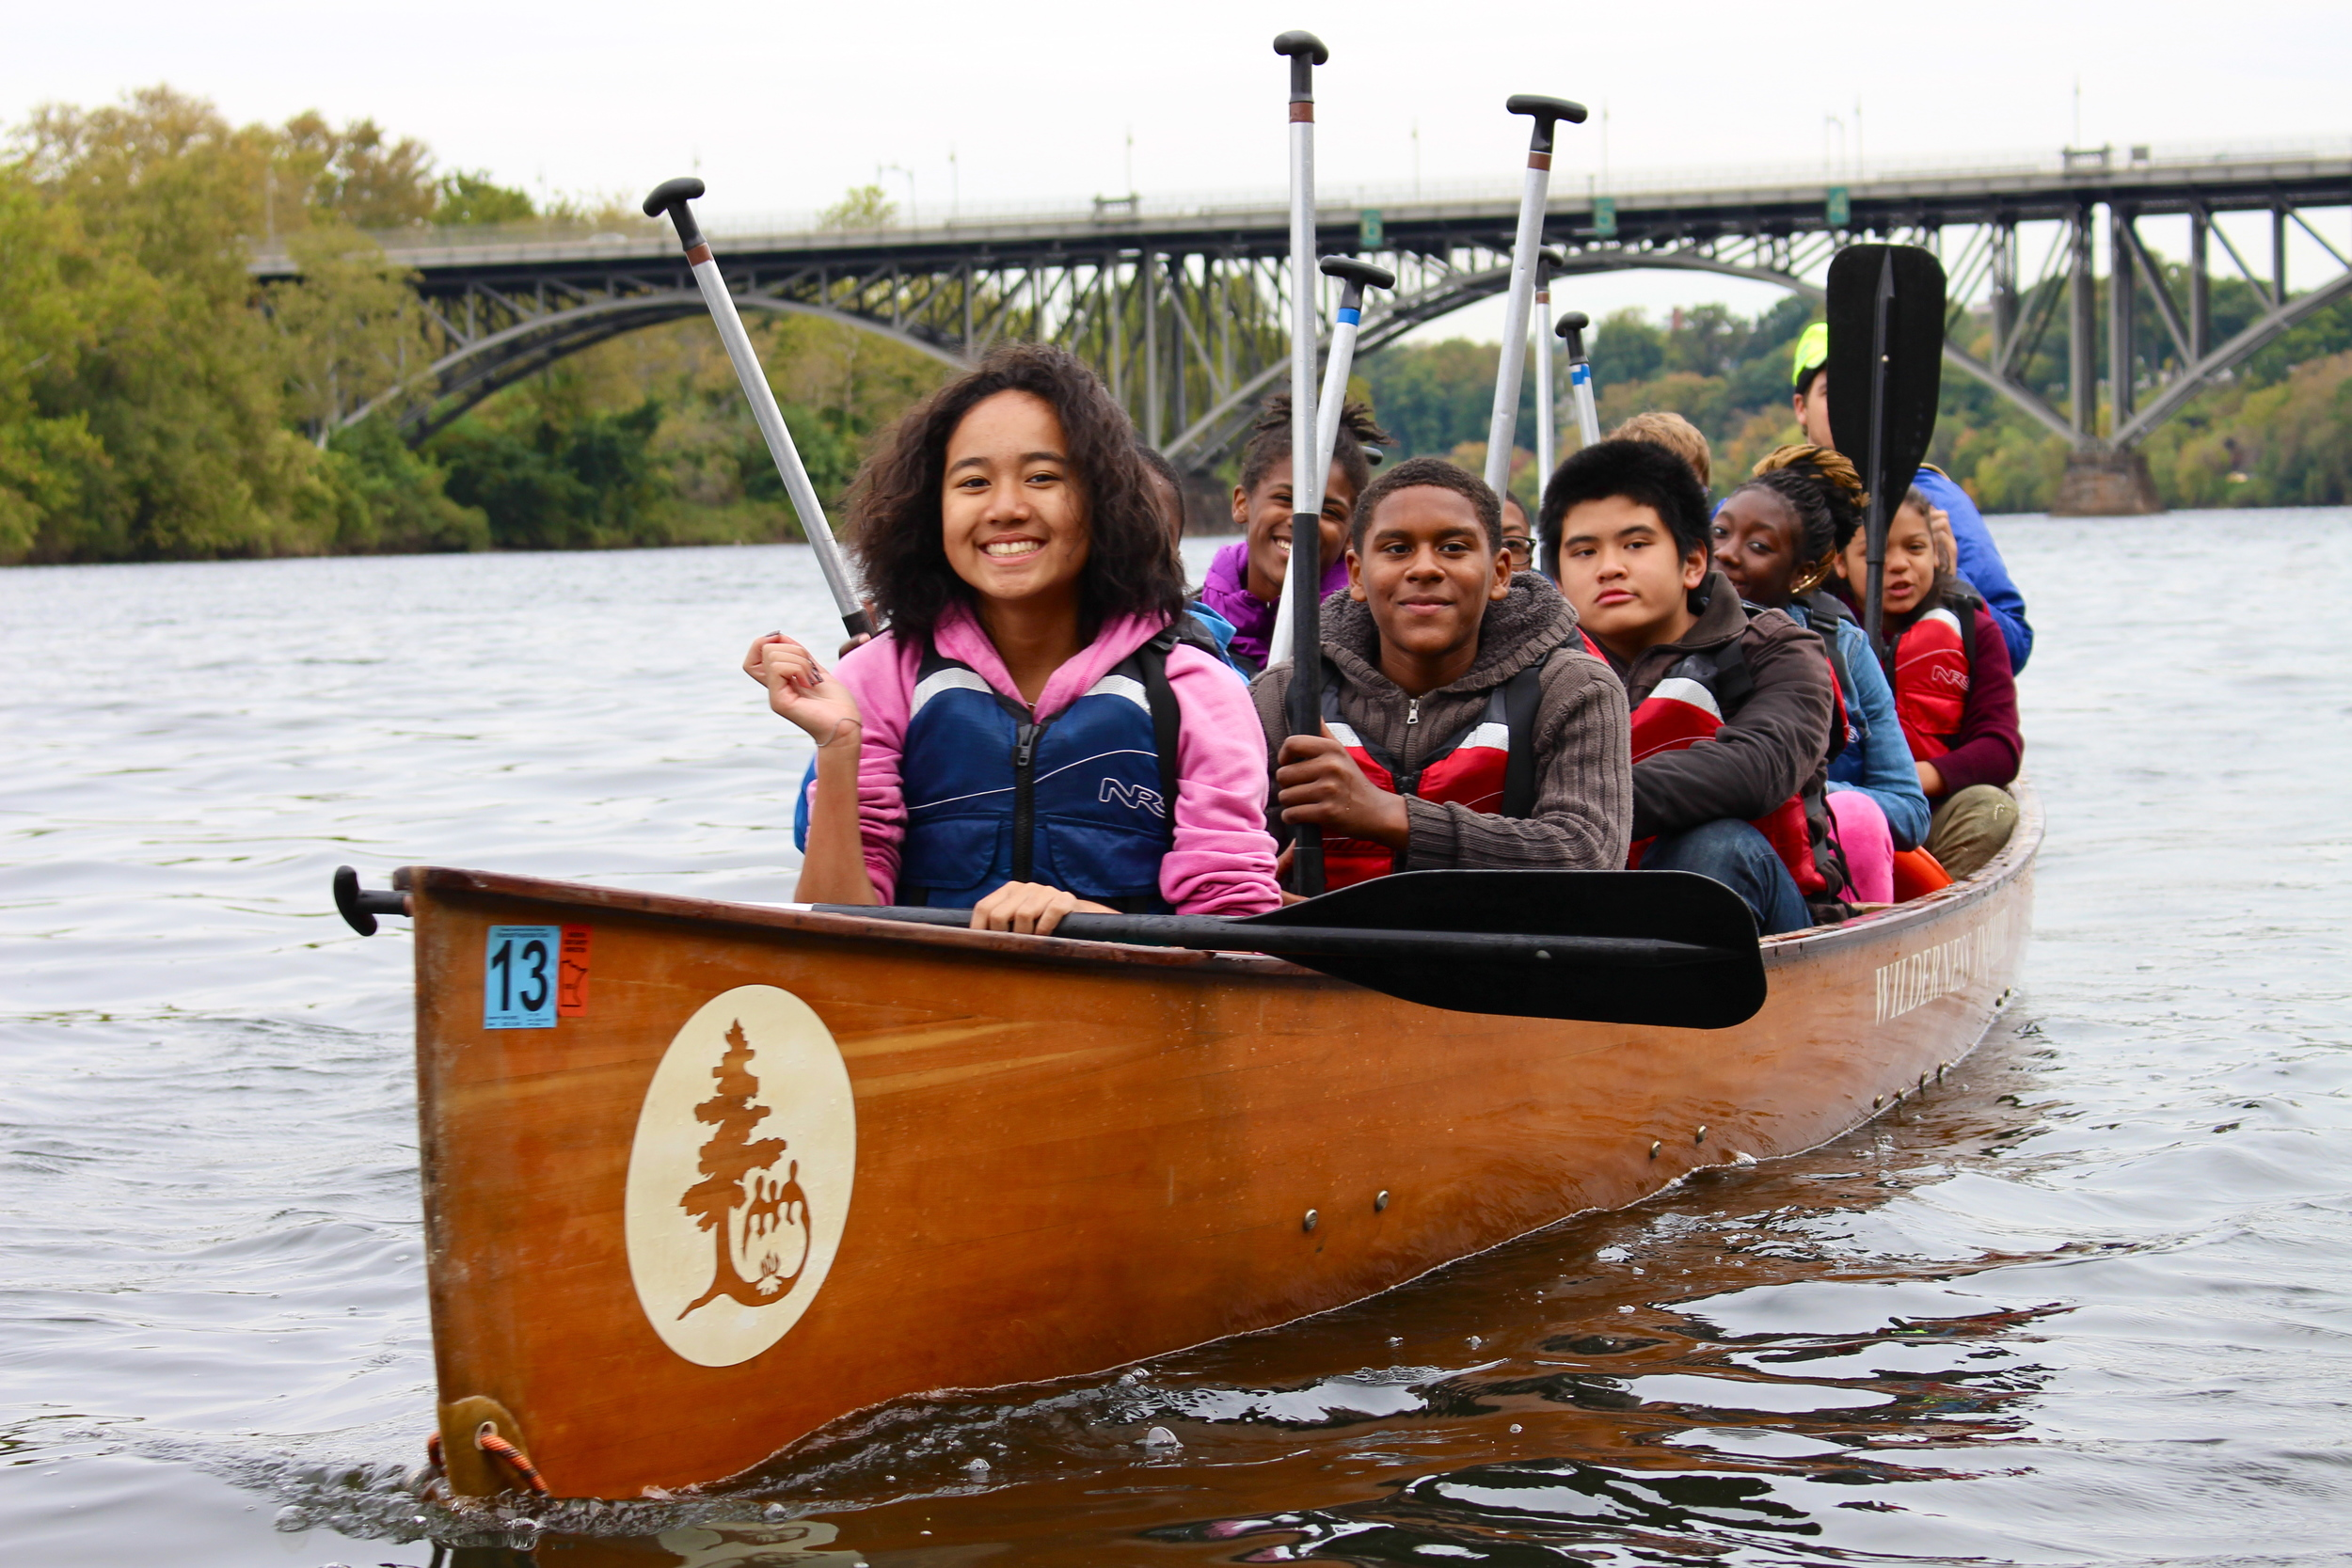 Philadelphia students explore the Schuylkill River during the 2013 Wilderness Inquiry Canoemobile Event. (1).JPG